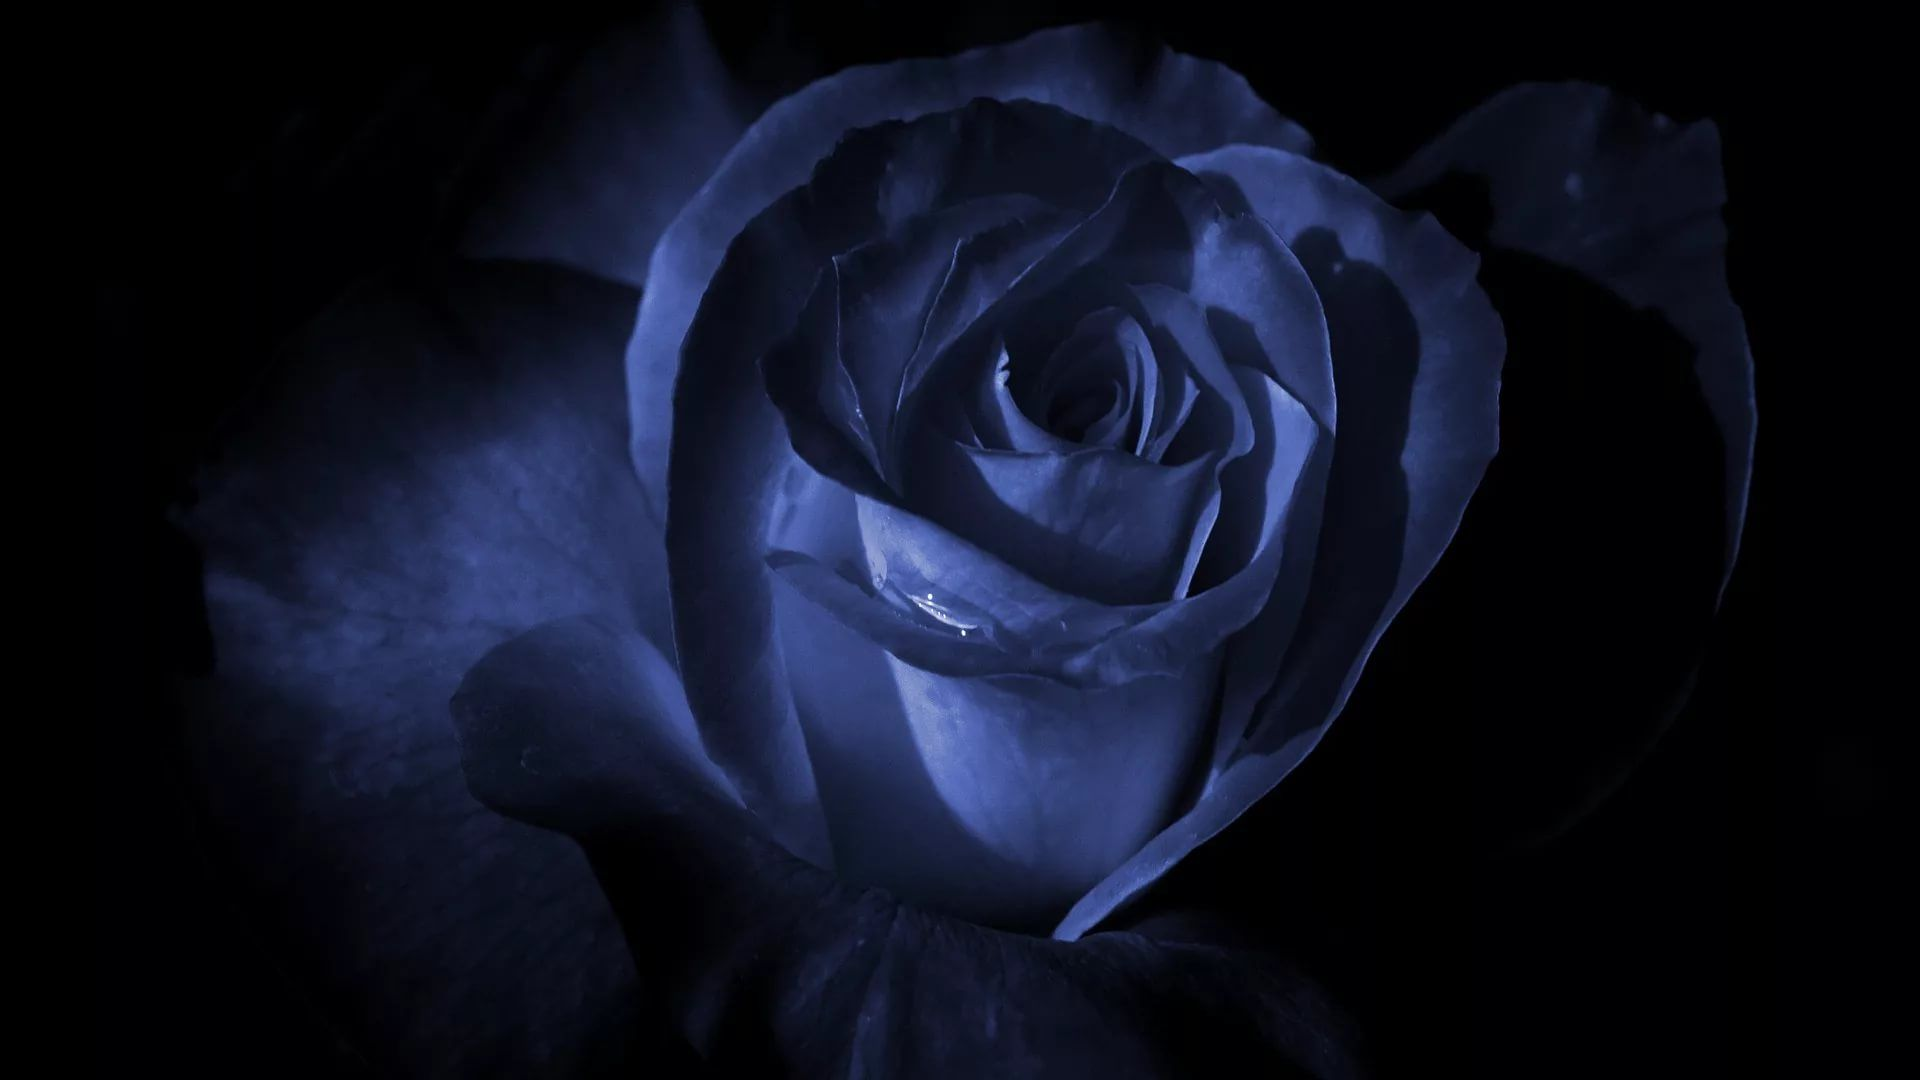 Blue Rose wallpaper image hd